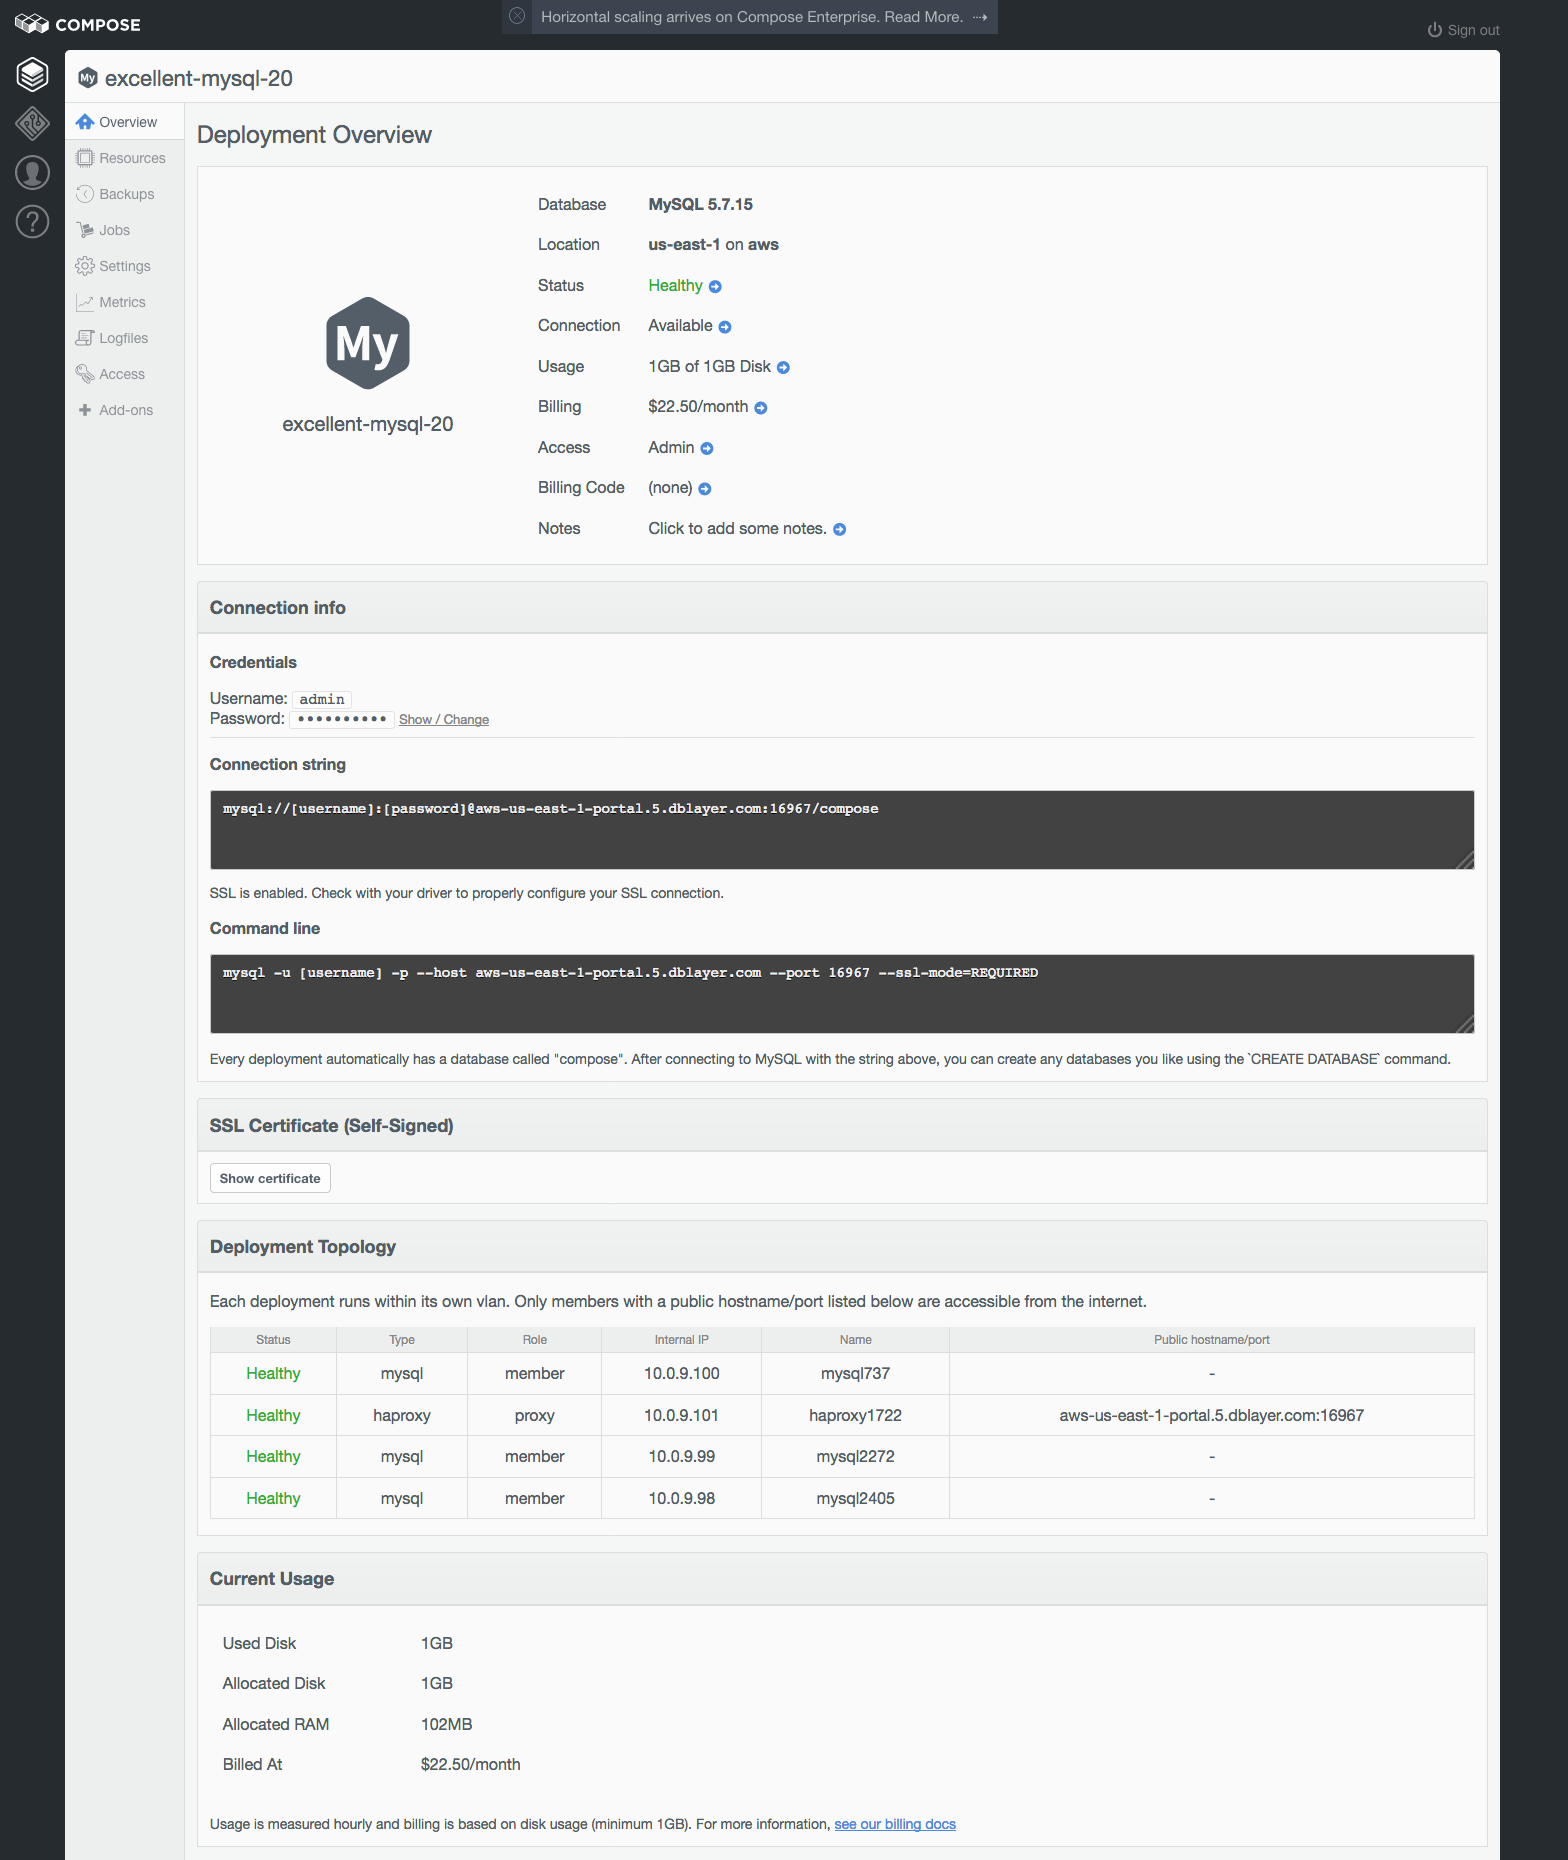 The Deployment Overview page from a Compose for MySQL deployment.